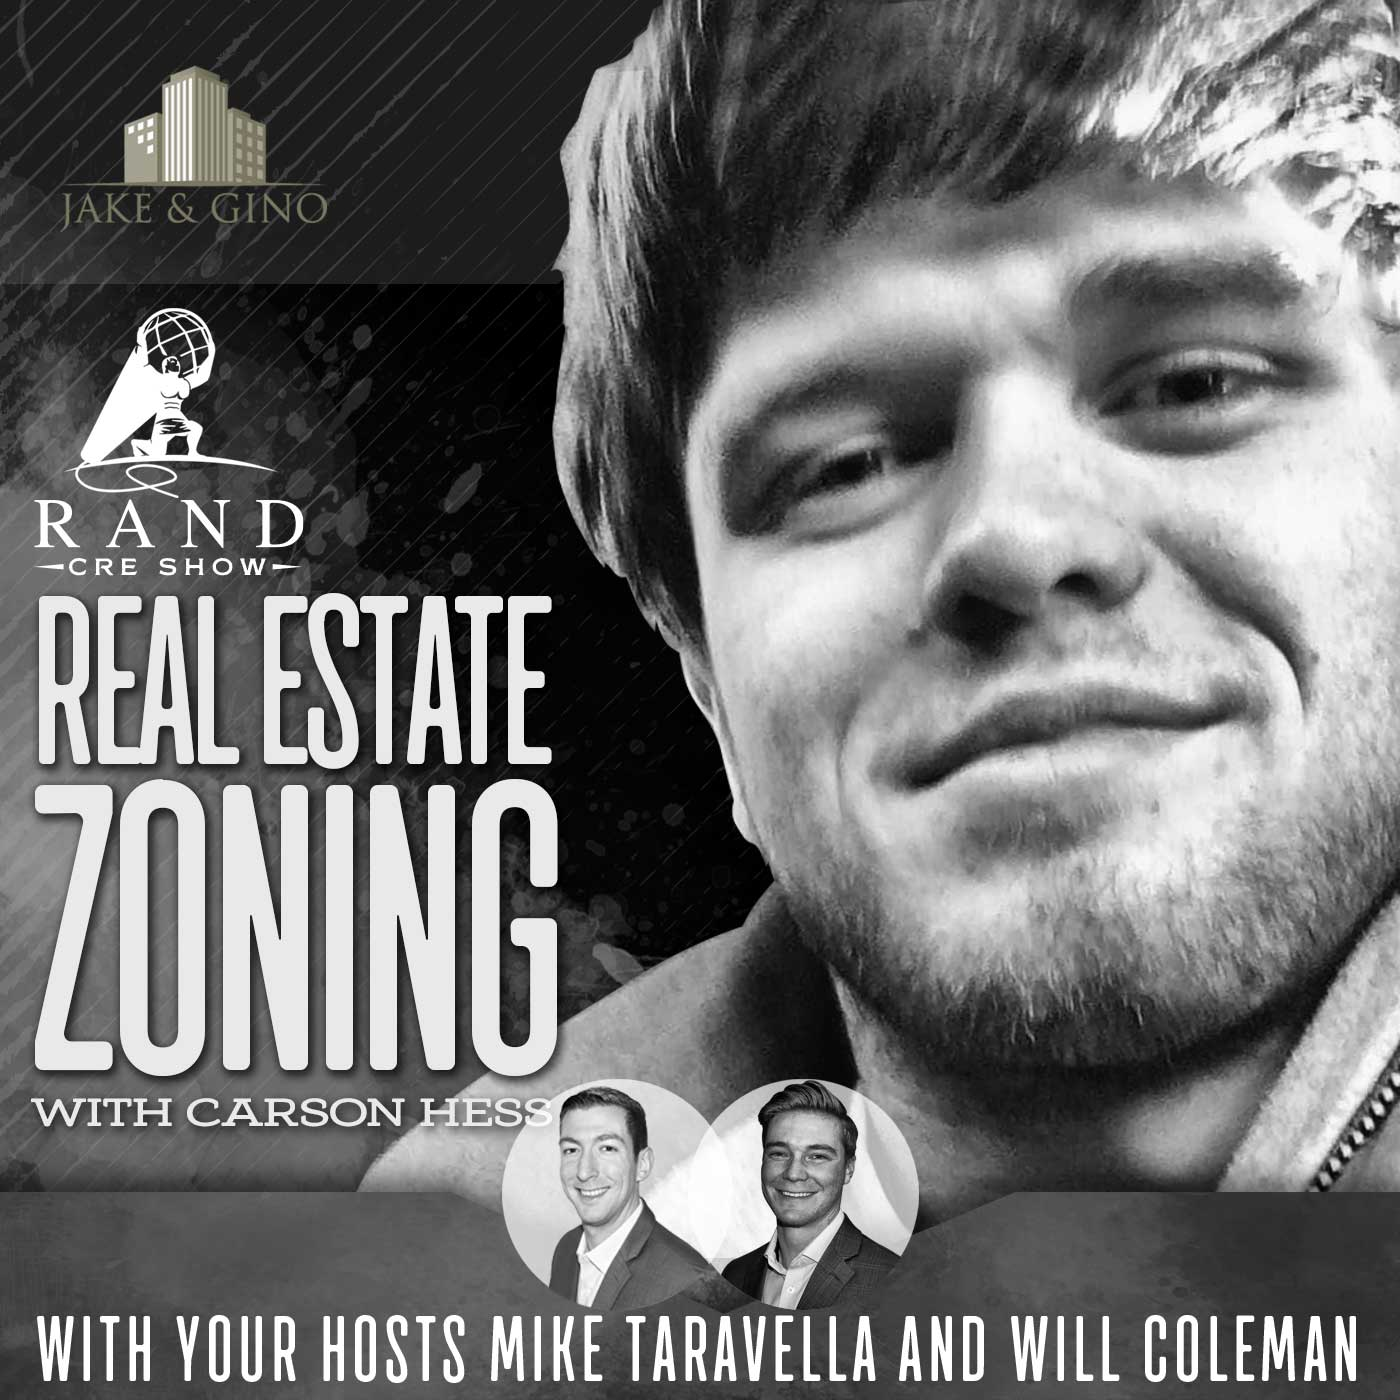 RCRE - Real Estate Zoning with Carson Hess